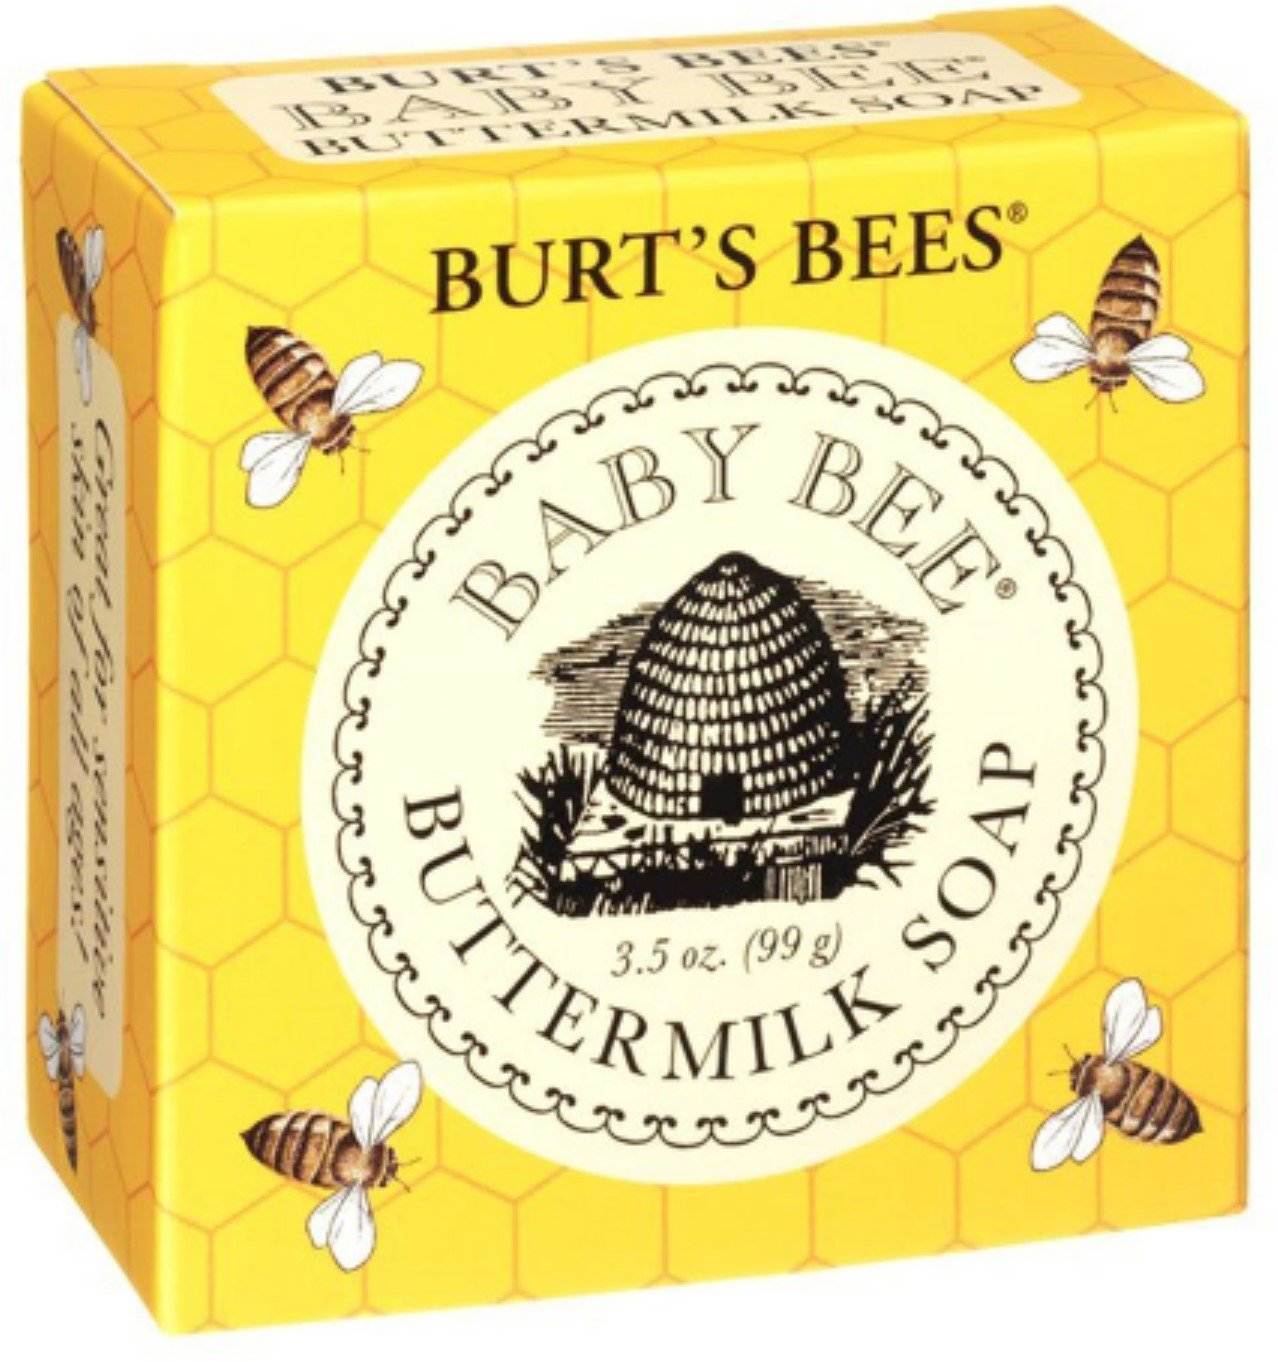 BABY BEE BUTTERMILK SOAP 3.5Z by Burt's Bees